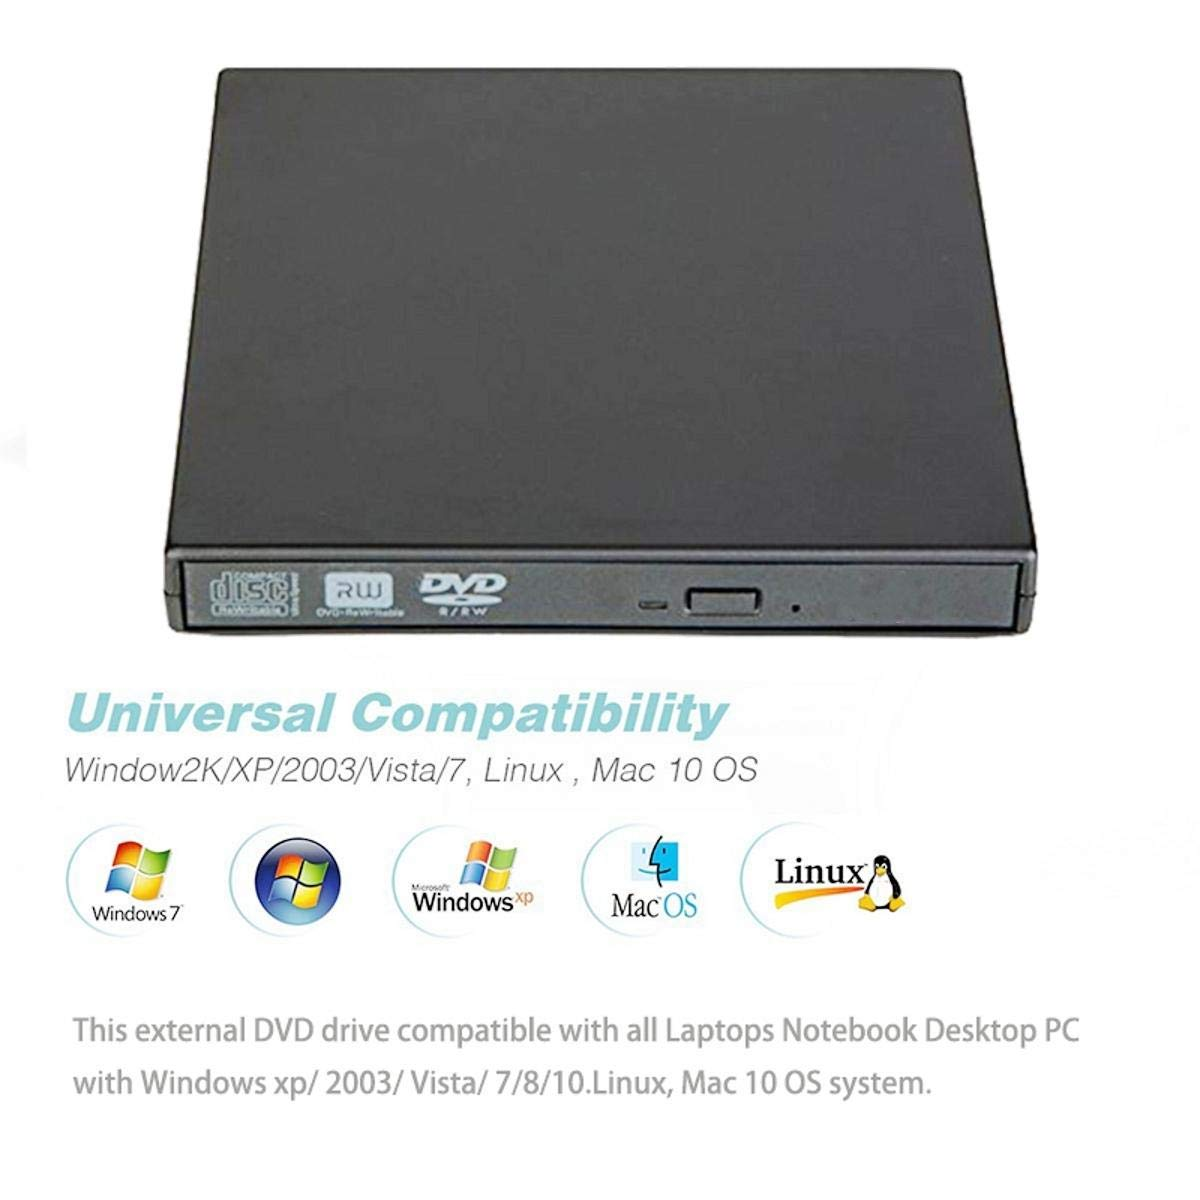 Amazon.com: DoubleYi USB 2.0 externo CD±RW DVD±RW quemador ...